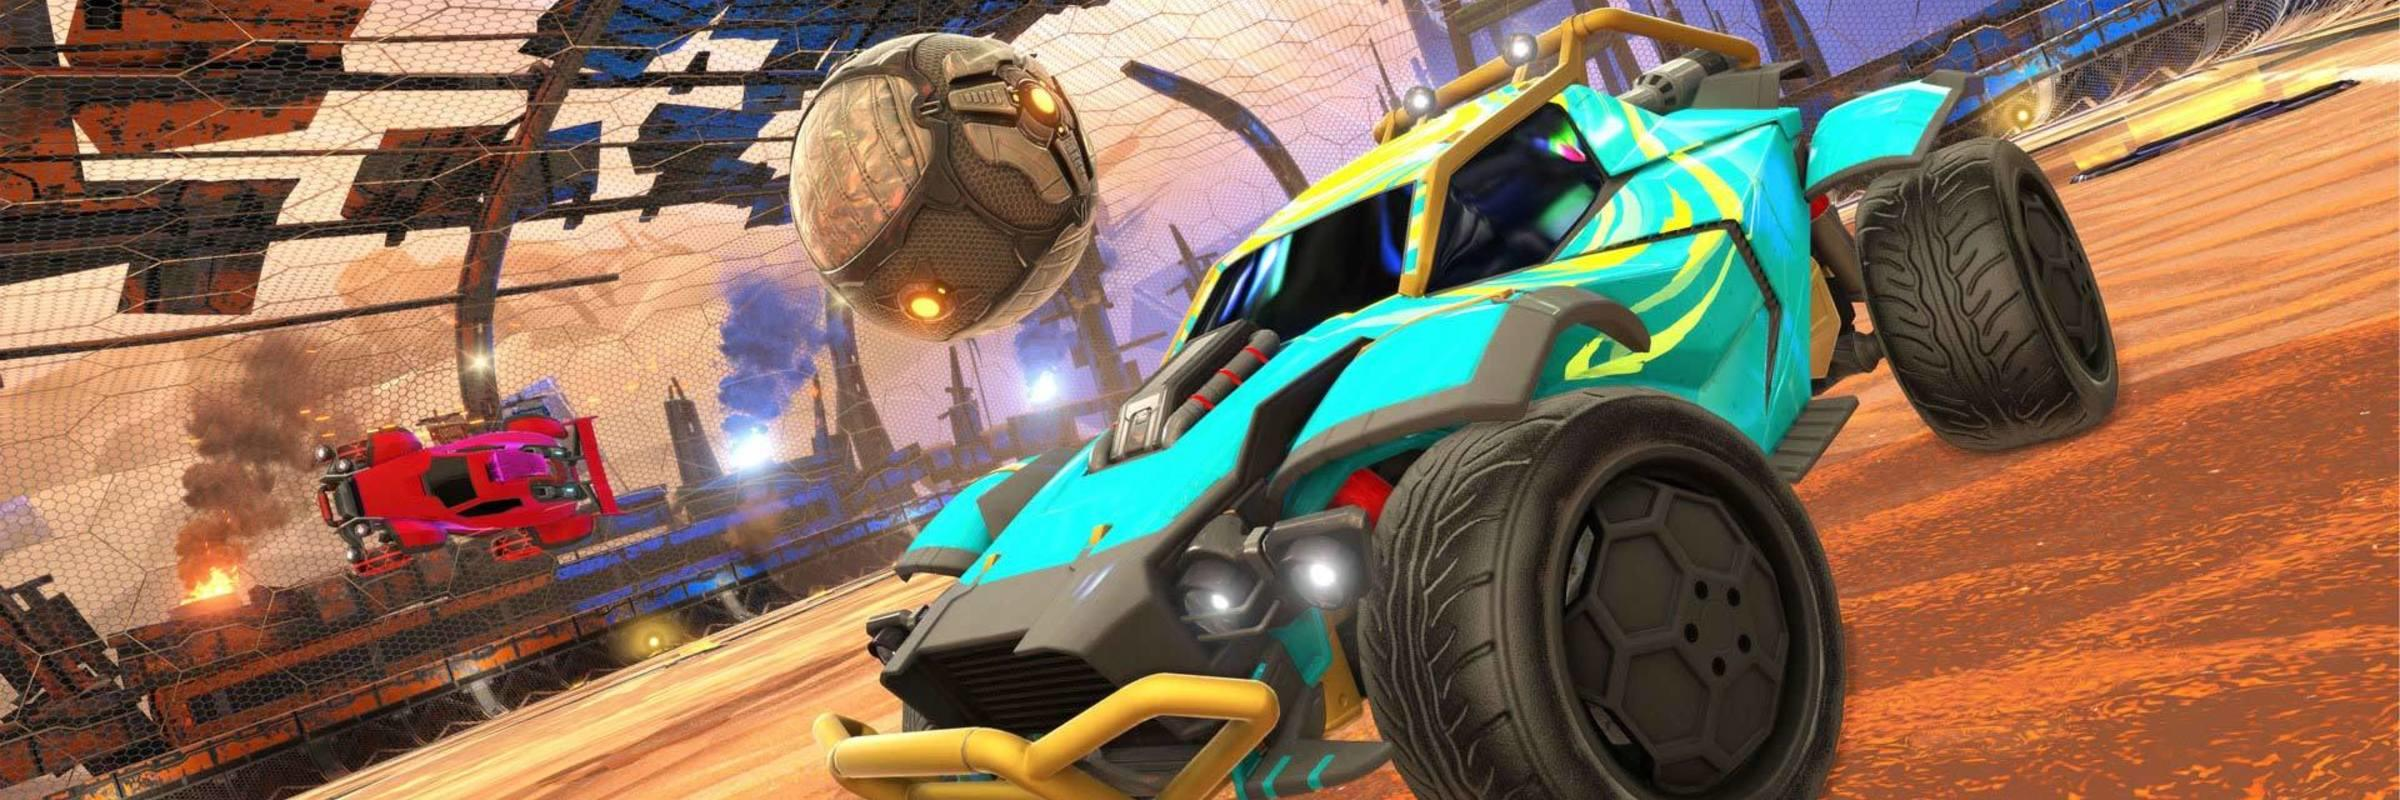 Psyonix-Sponsored Community Events Return in 2018 Image